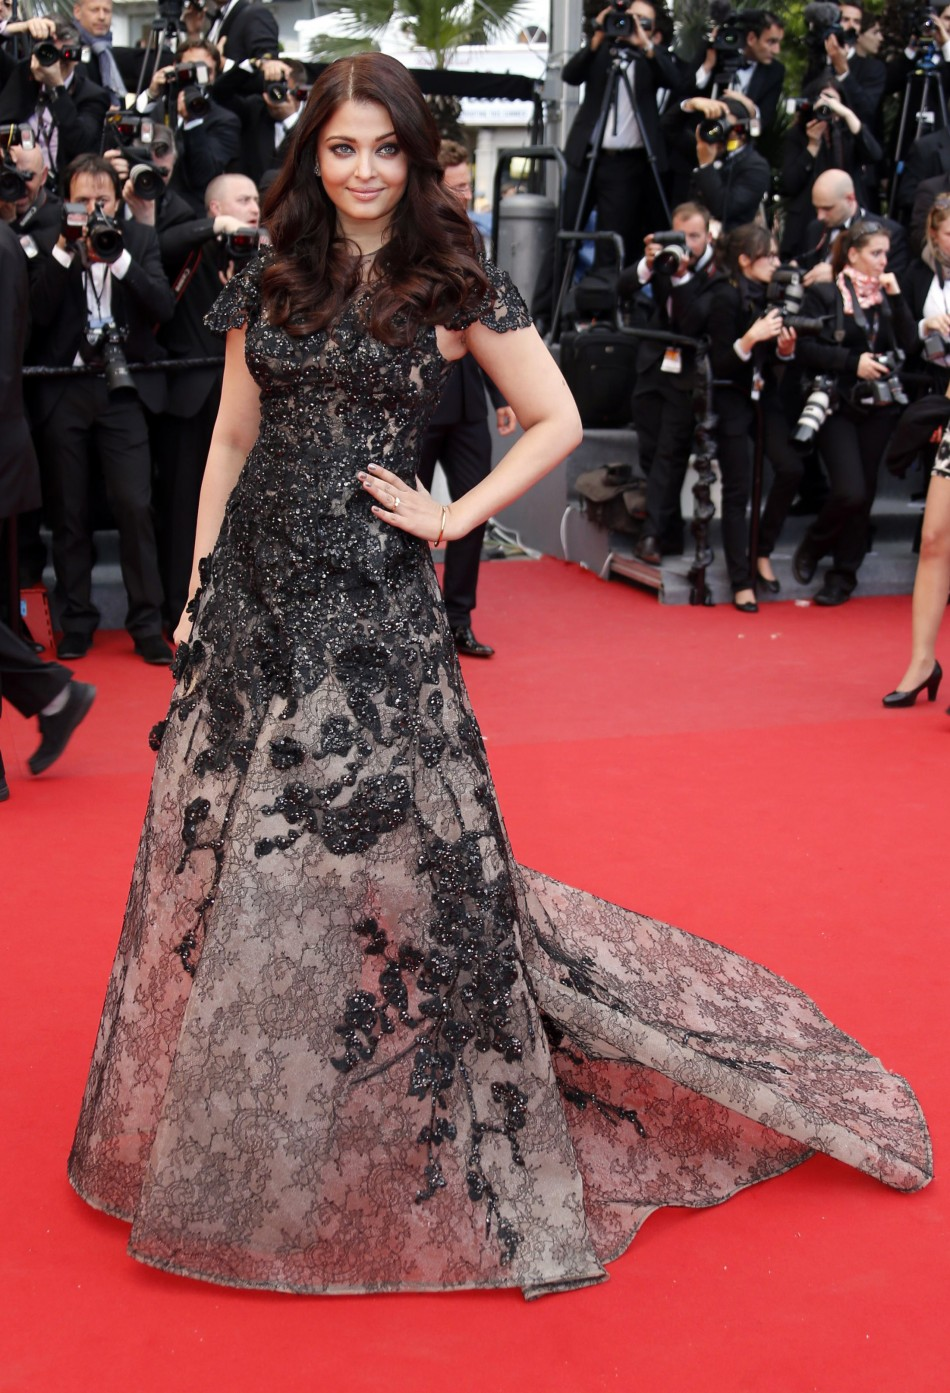 Indian actress Aishwarya Rai poses on the red carpet as she arrives for the screening of the film Inside Llewyn Davis in competition during the 66th Cannes Film Festival in Cannes May 19, 2013.